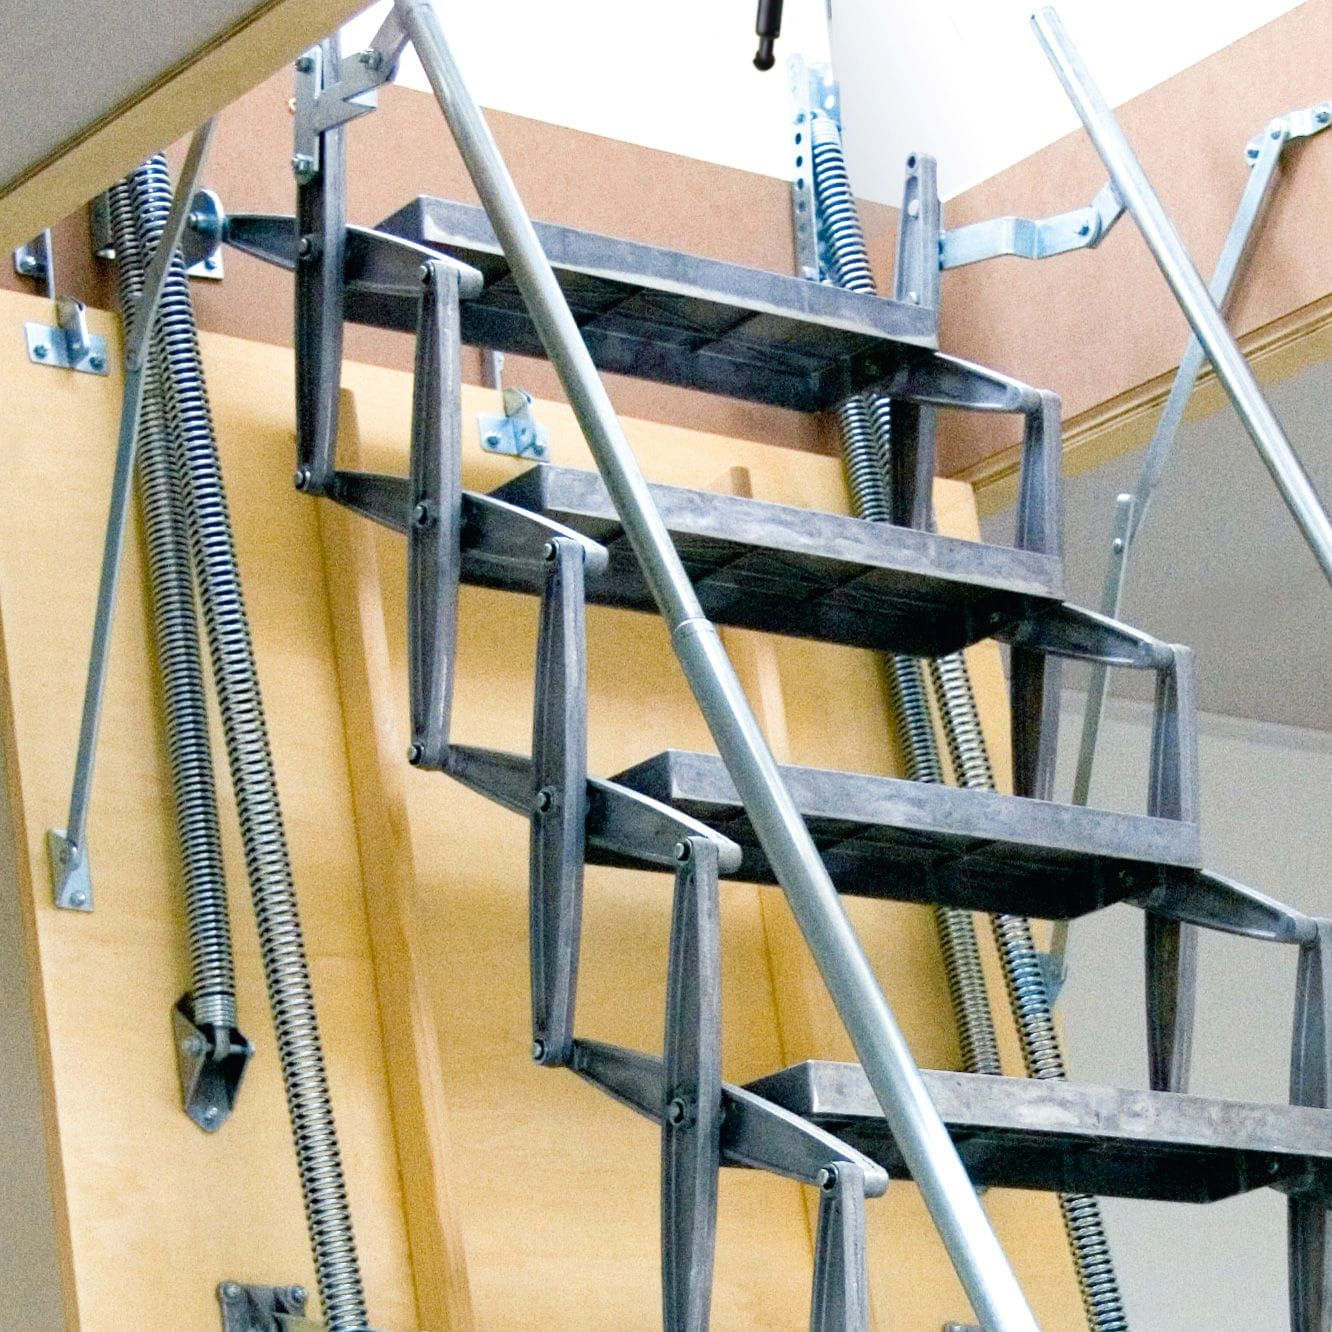 Motorized Ladder Accordion Protection Aluminum Retractable   Folding Attic Stairs With Handrail   Attic Remodel   Attic Renovation   Ceiling   Stira   Rainbow F2260